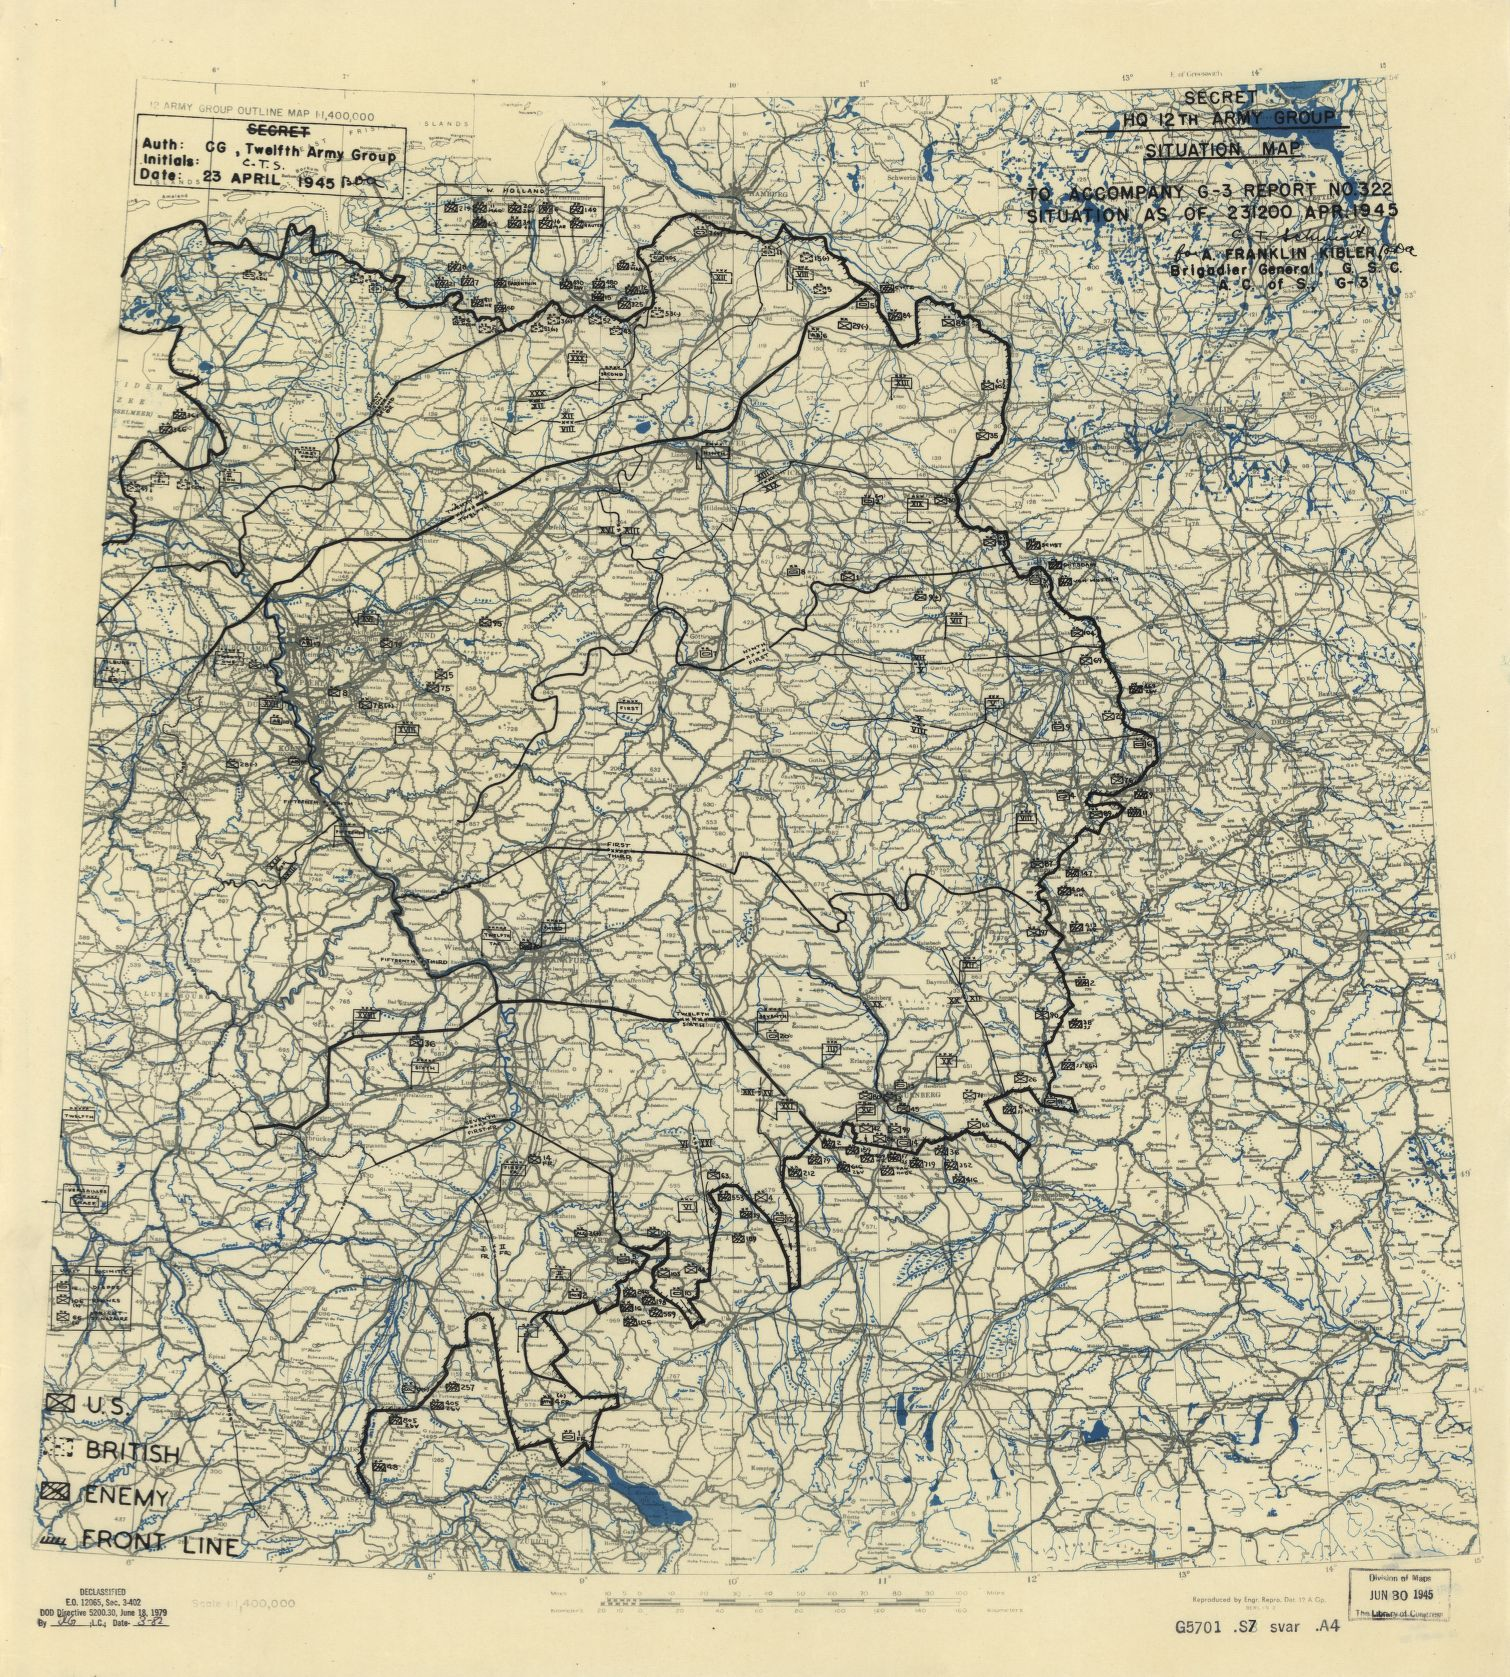 Carte de situation du 23 avril 1945 Situation map from